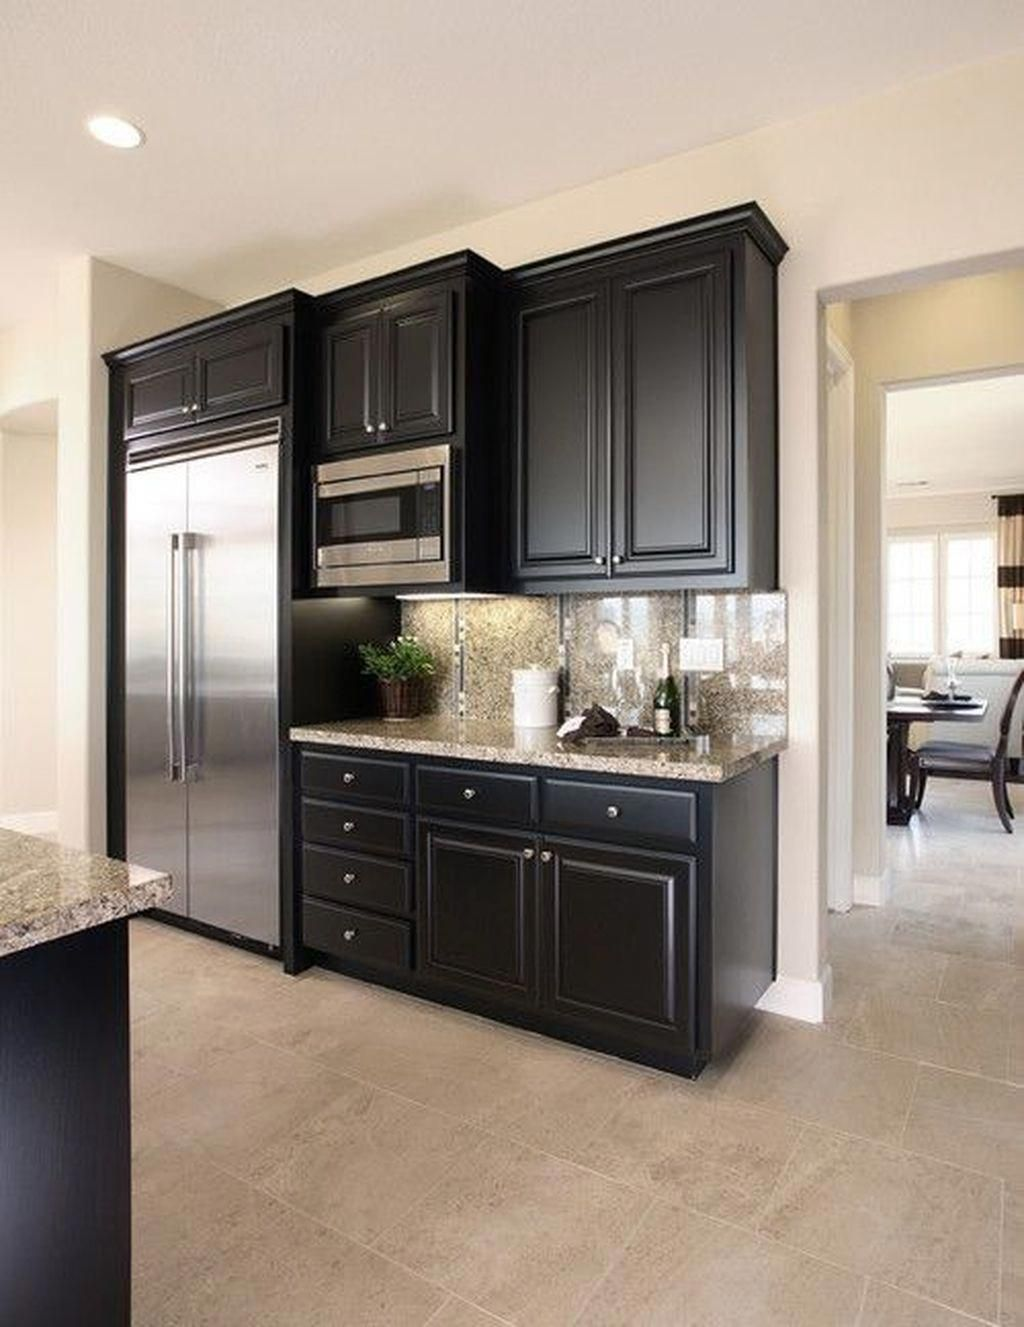 What decor over the bed? | Black kitchen cabinets, Kitchen ...